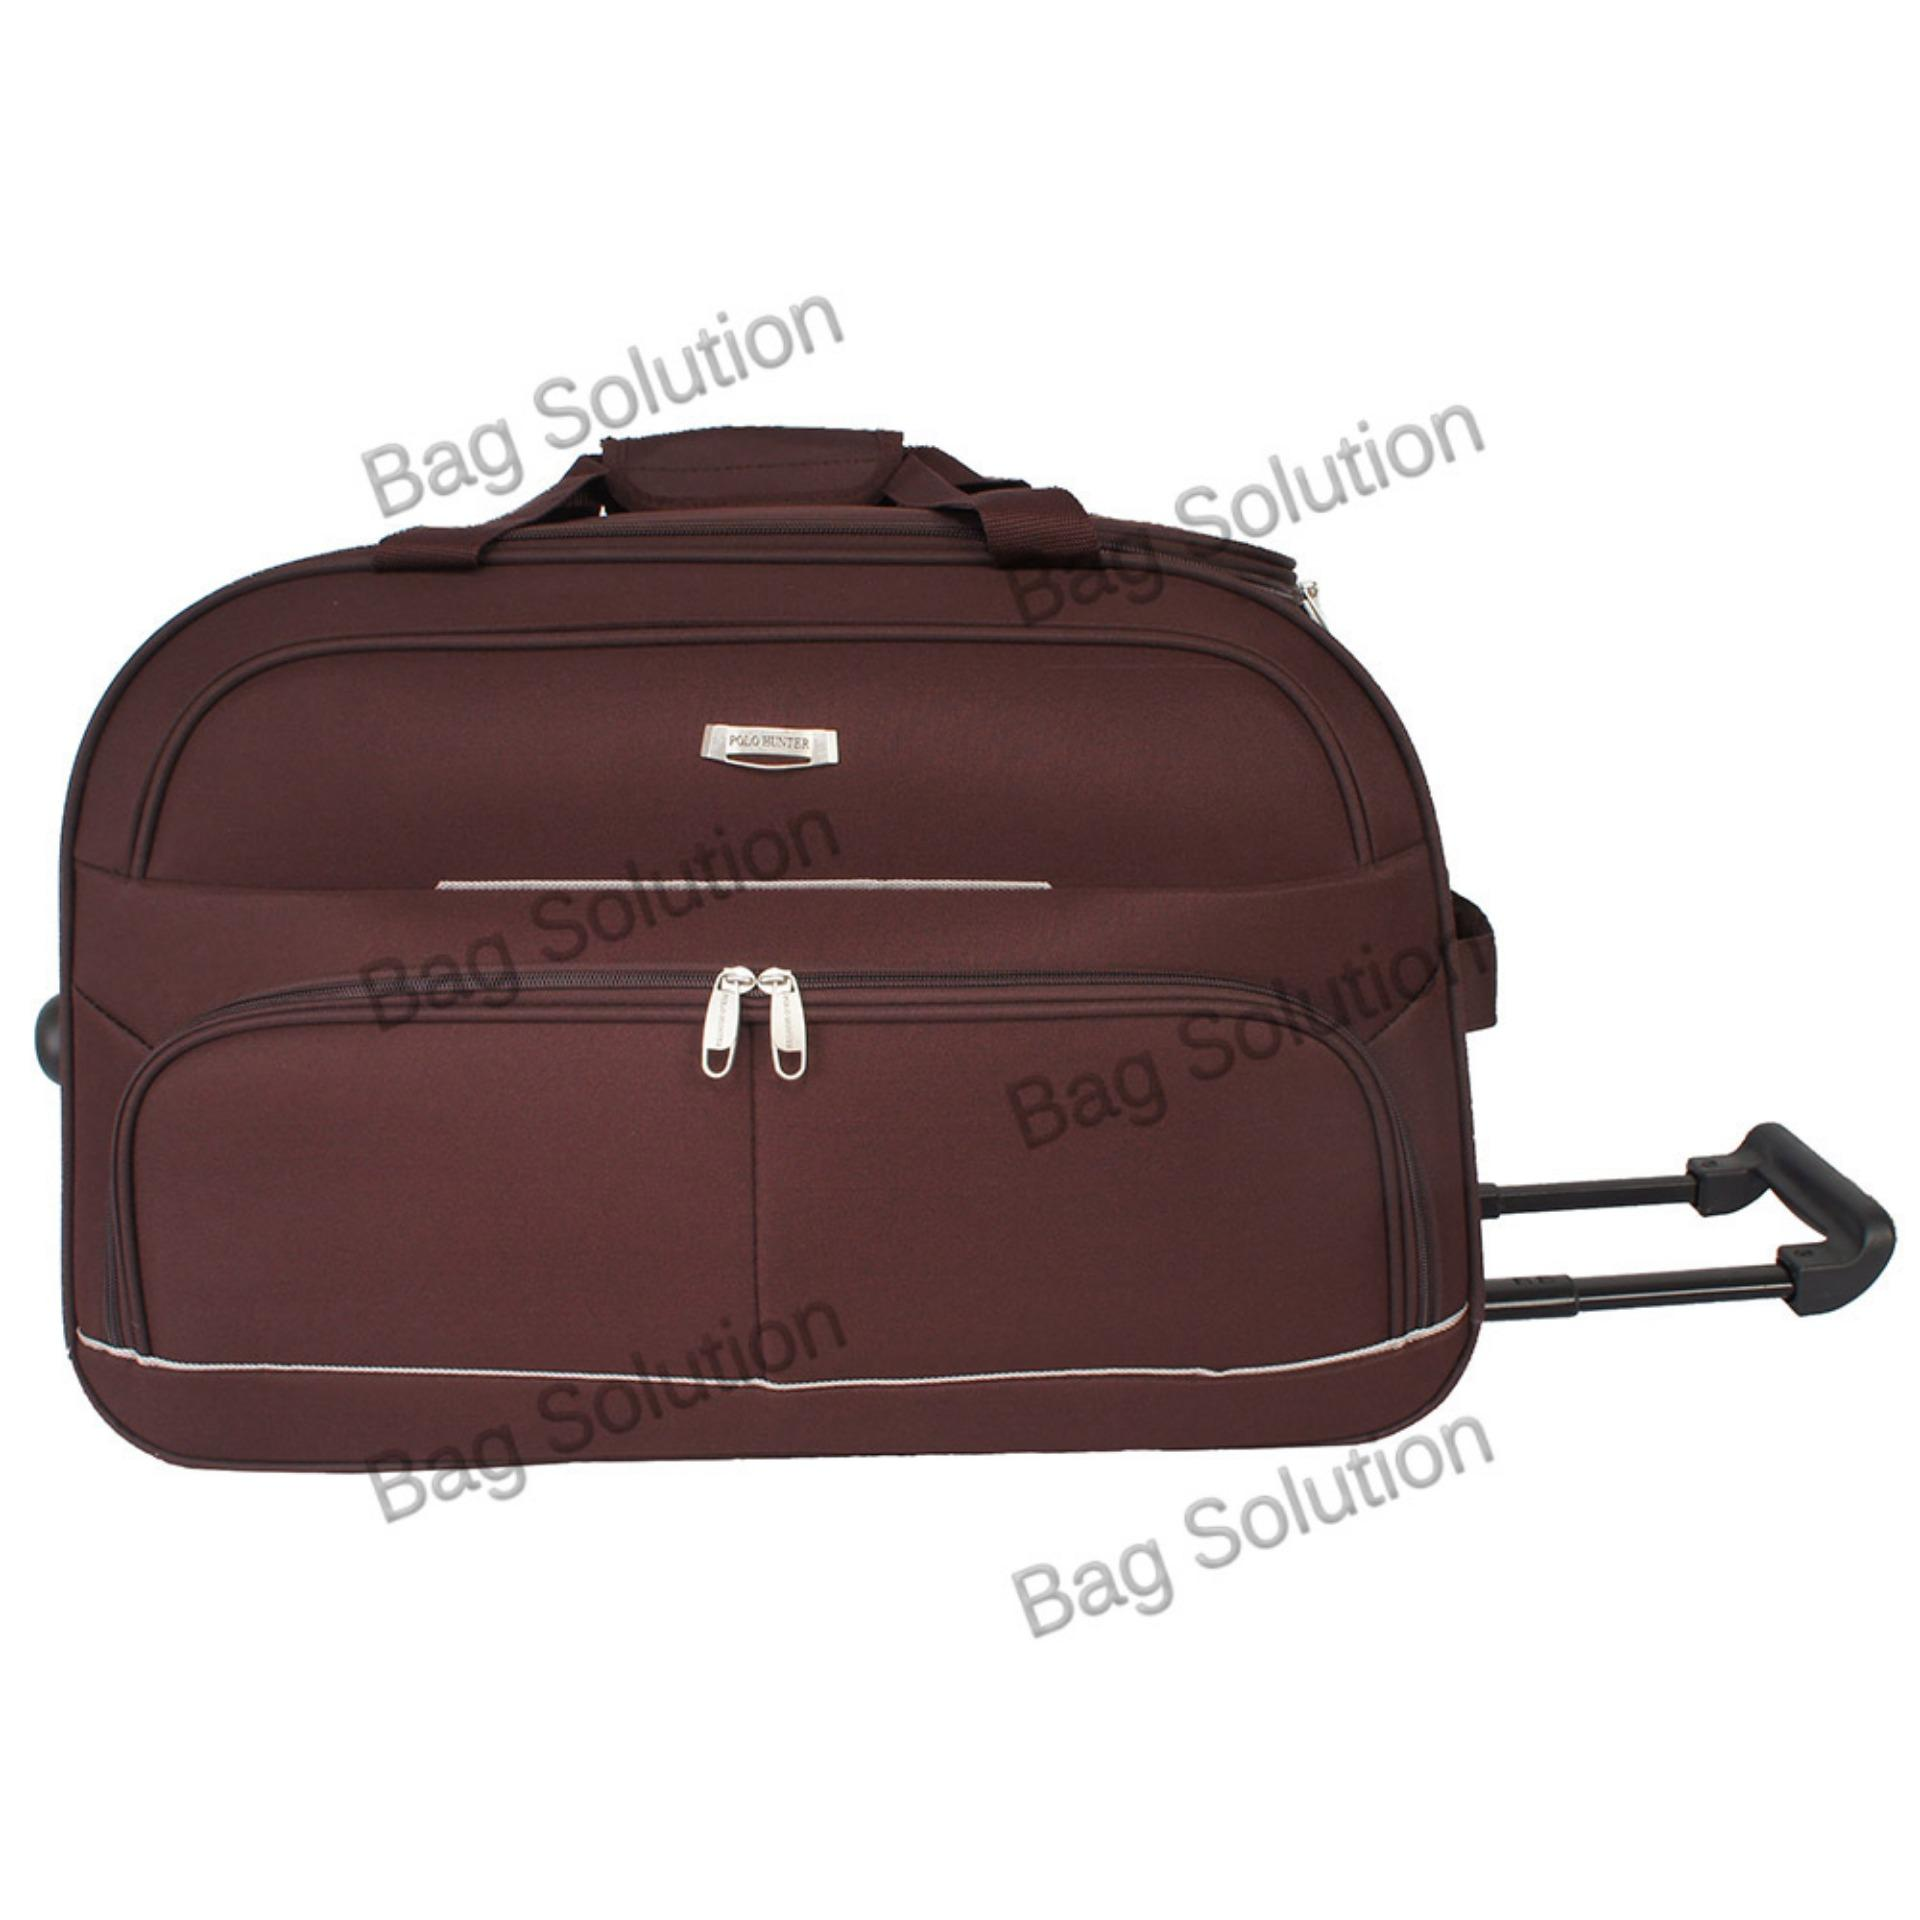 Ulasan Mengenai Polo Hunter Tas Kabin Trolley Duffle Bag With Trolley 593 Size 23 Inch Coffee